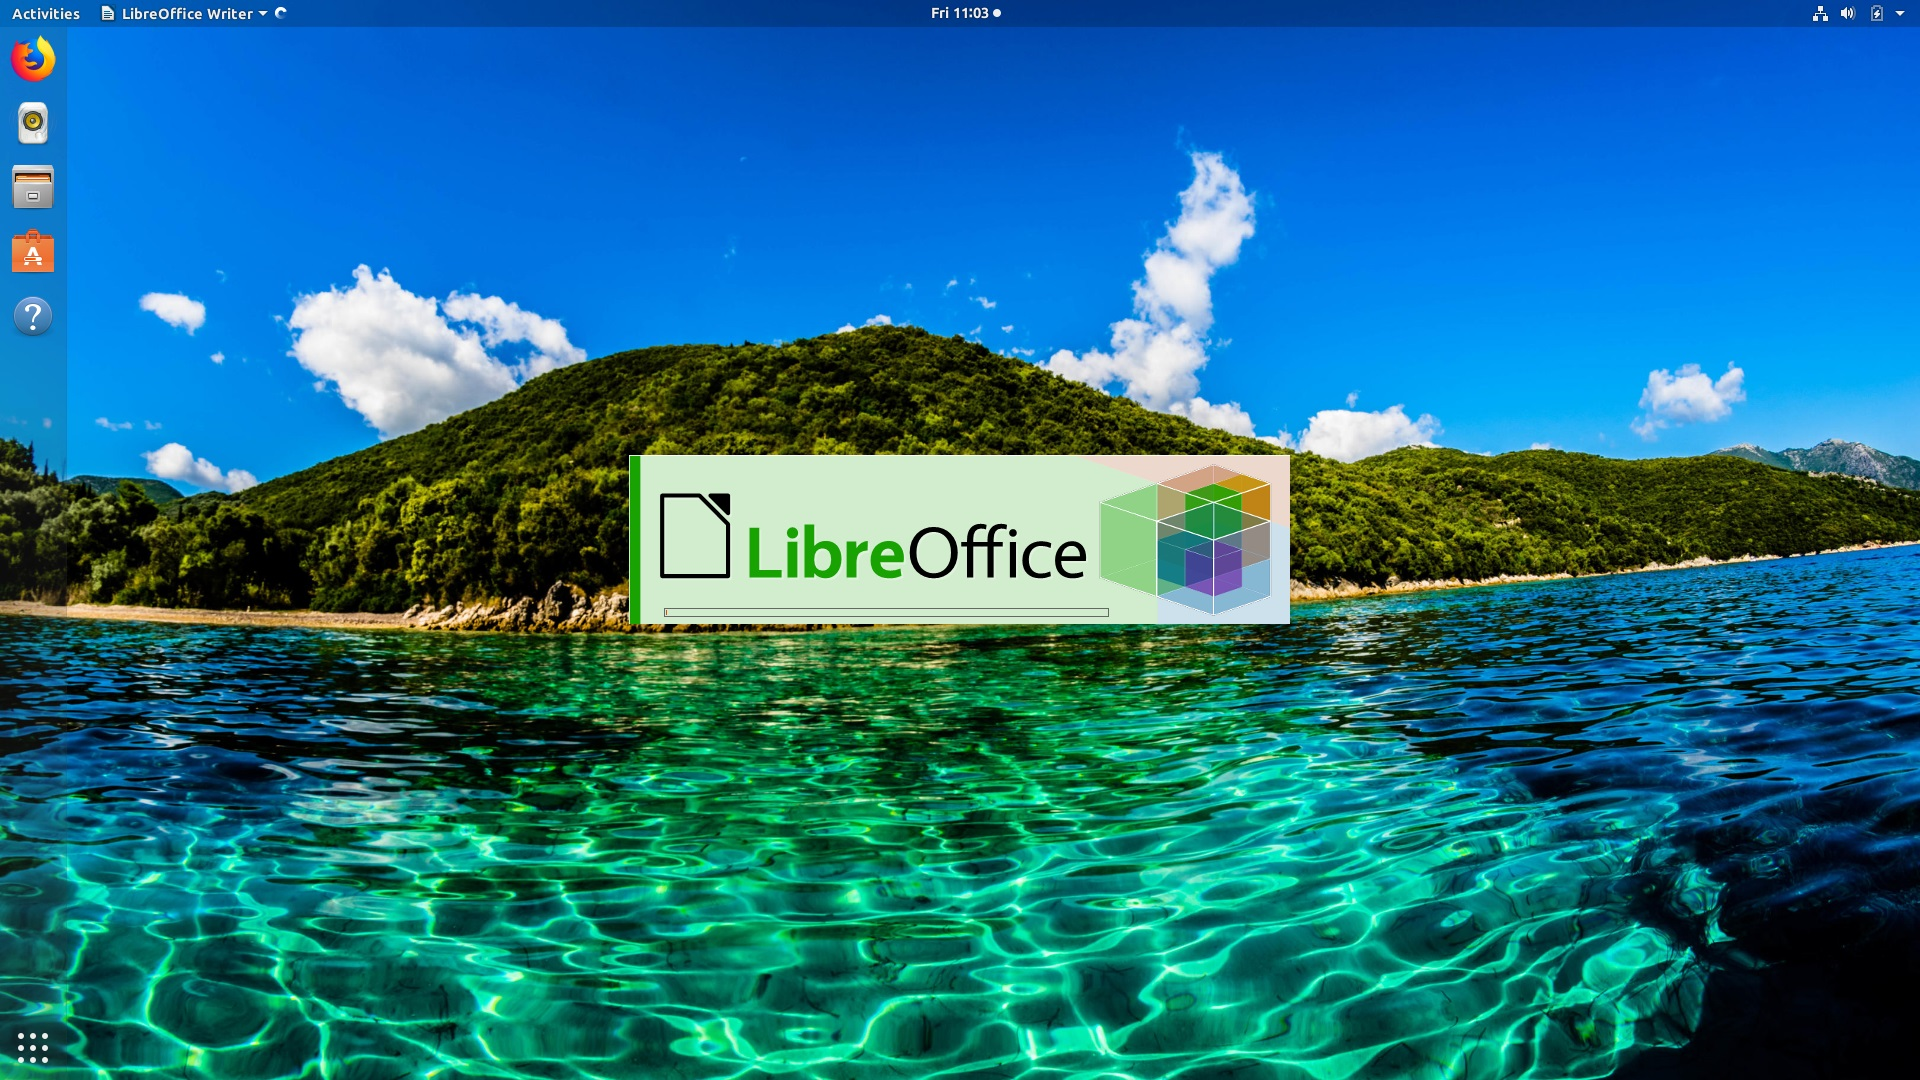 LibreOffice 6 0 1 Available To Install In Ubuntu/Linux Mint